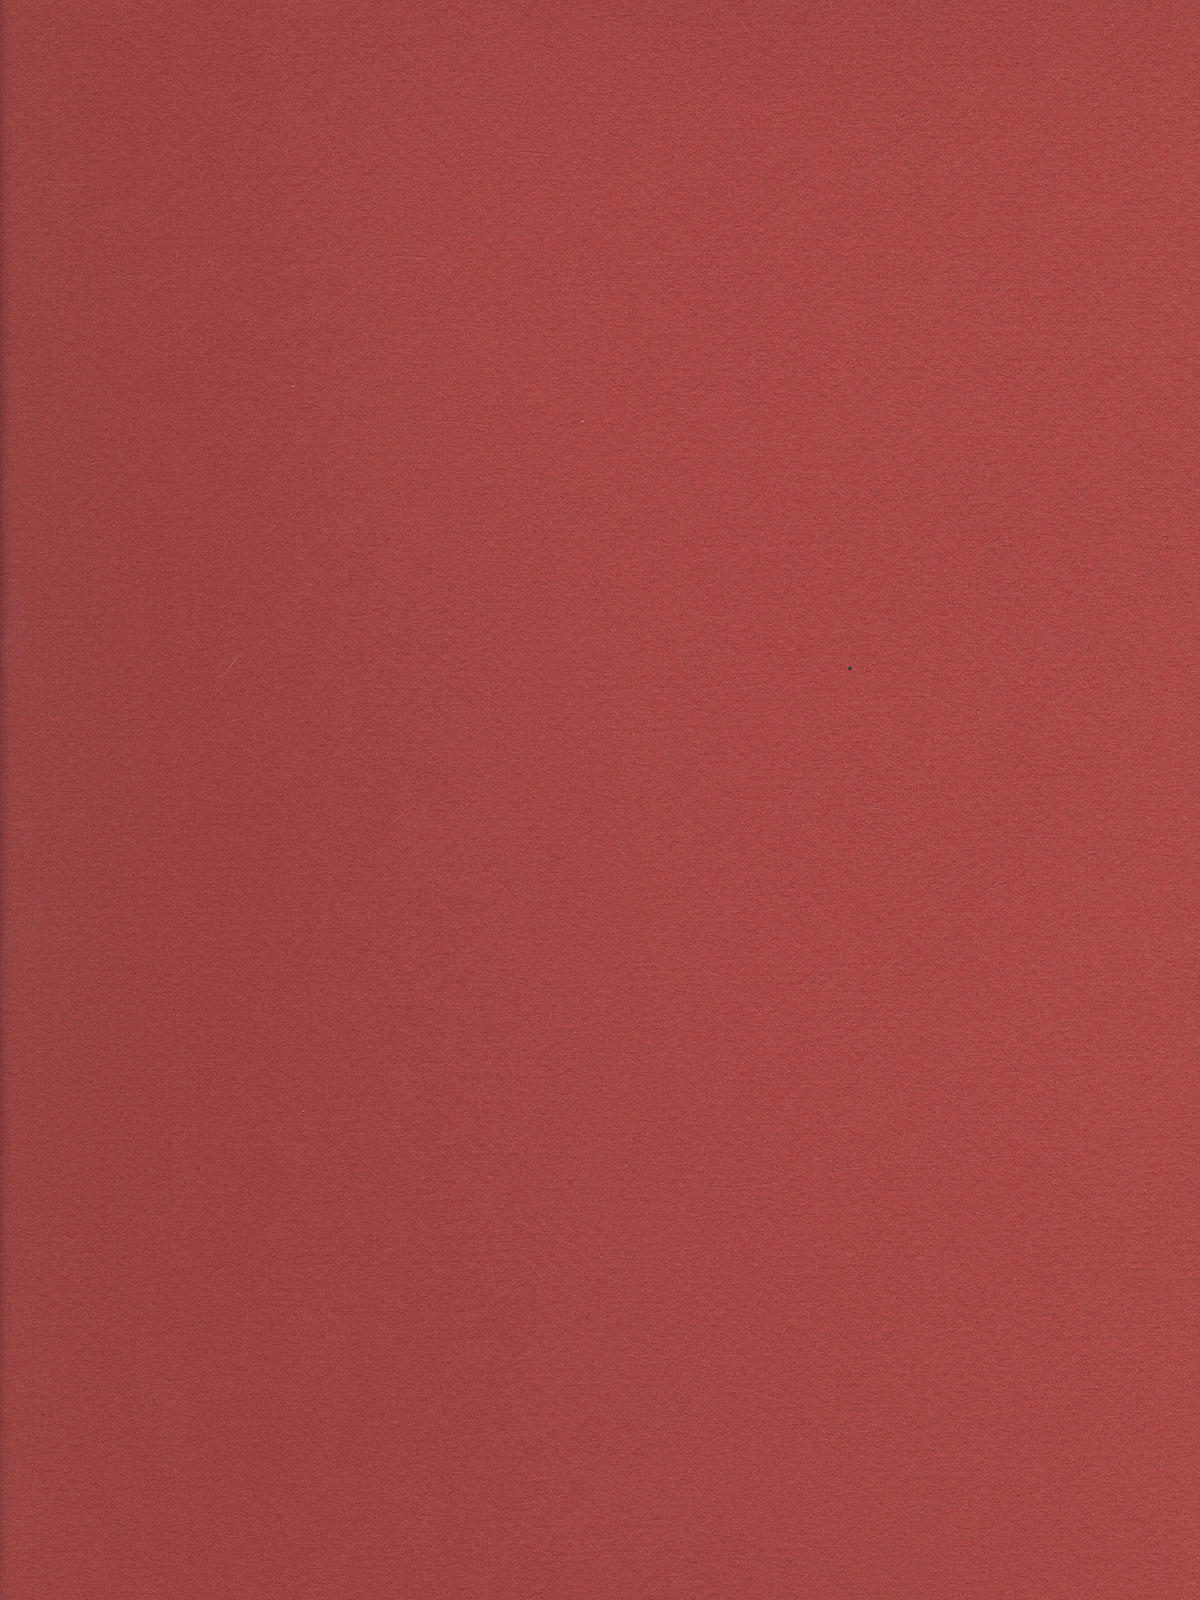 Mi-teintes Tinted Paper Red Earth 19 In. X 25 In.